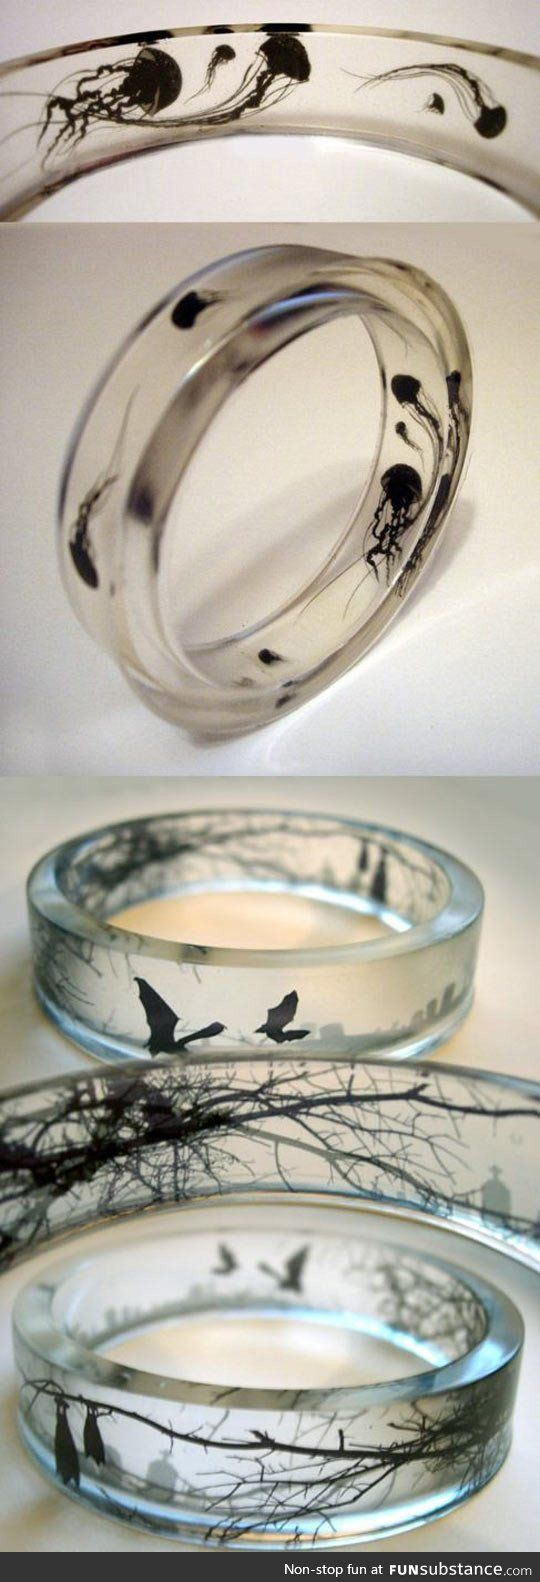 These glass rings with designs in them are so cool